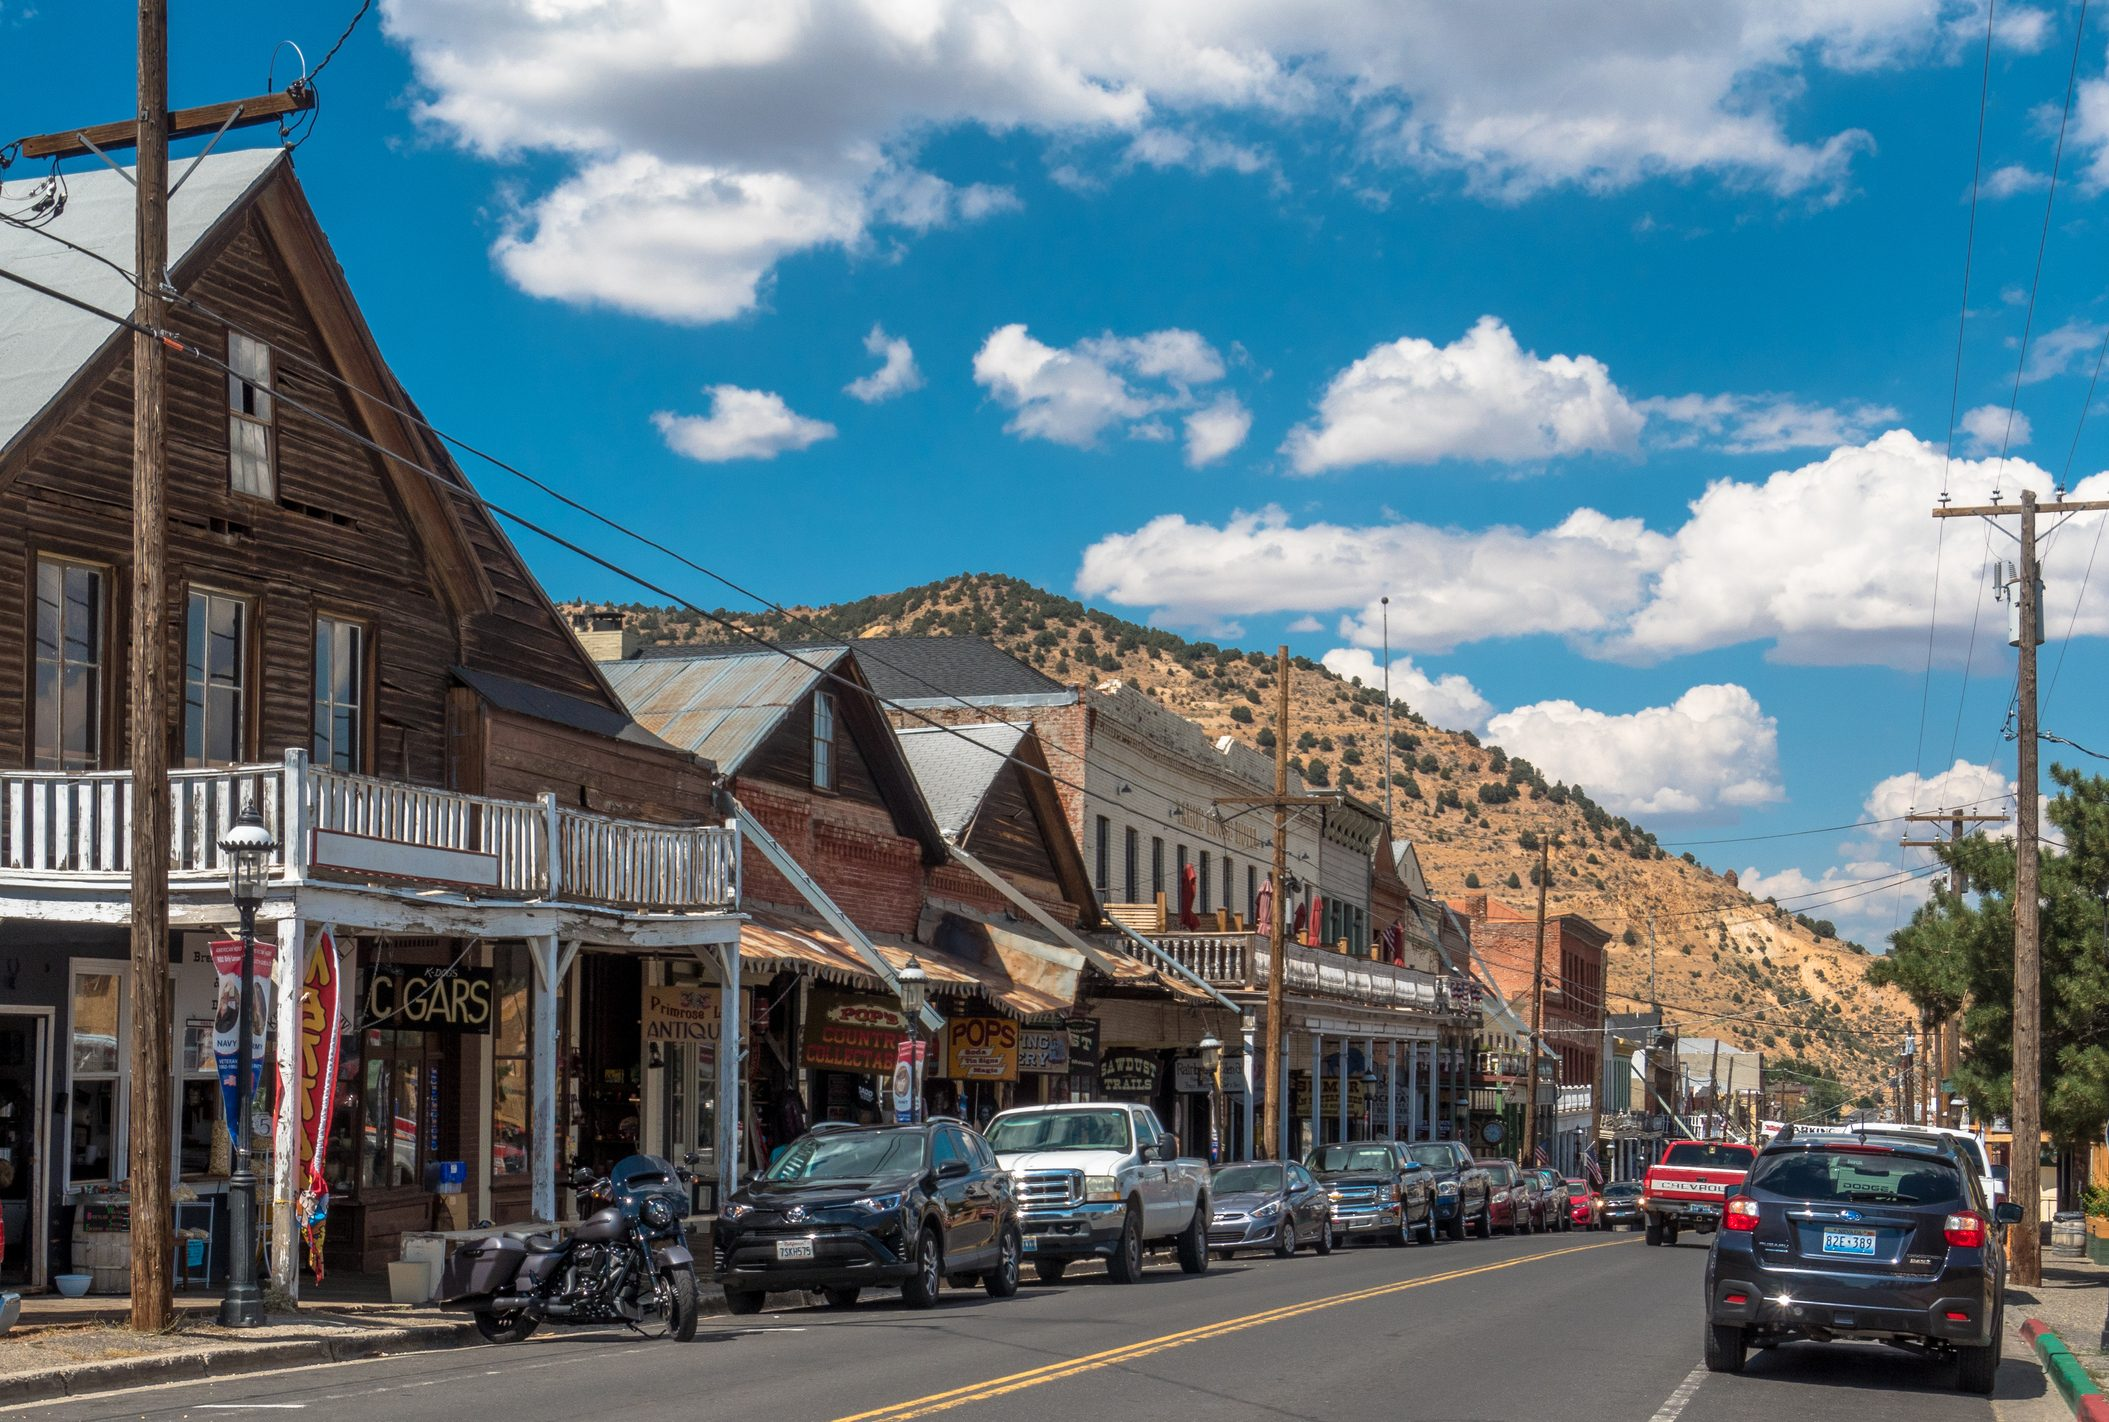 Wooden houses in Virginia City, NV